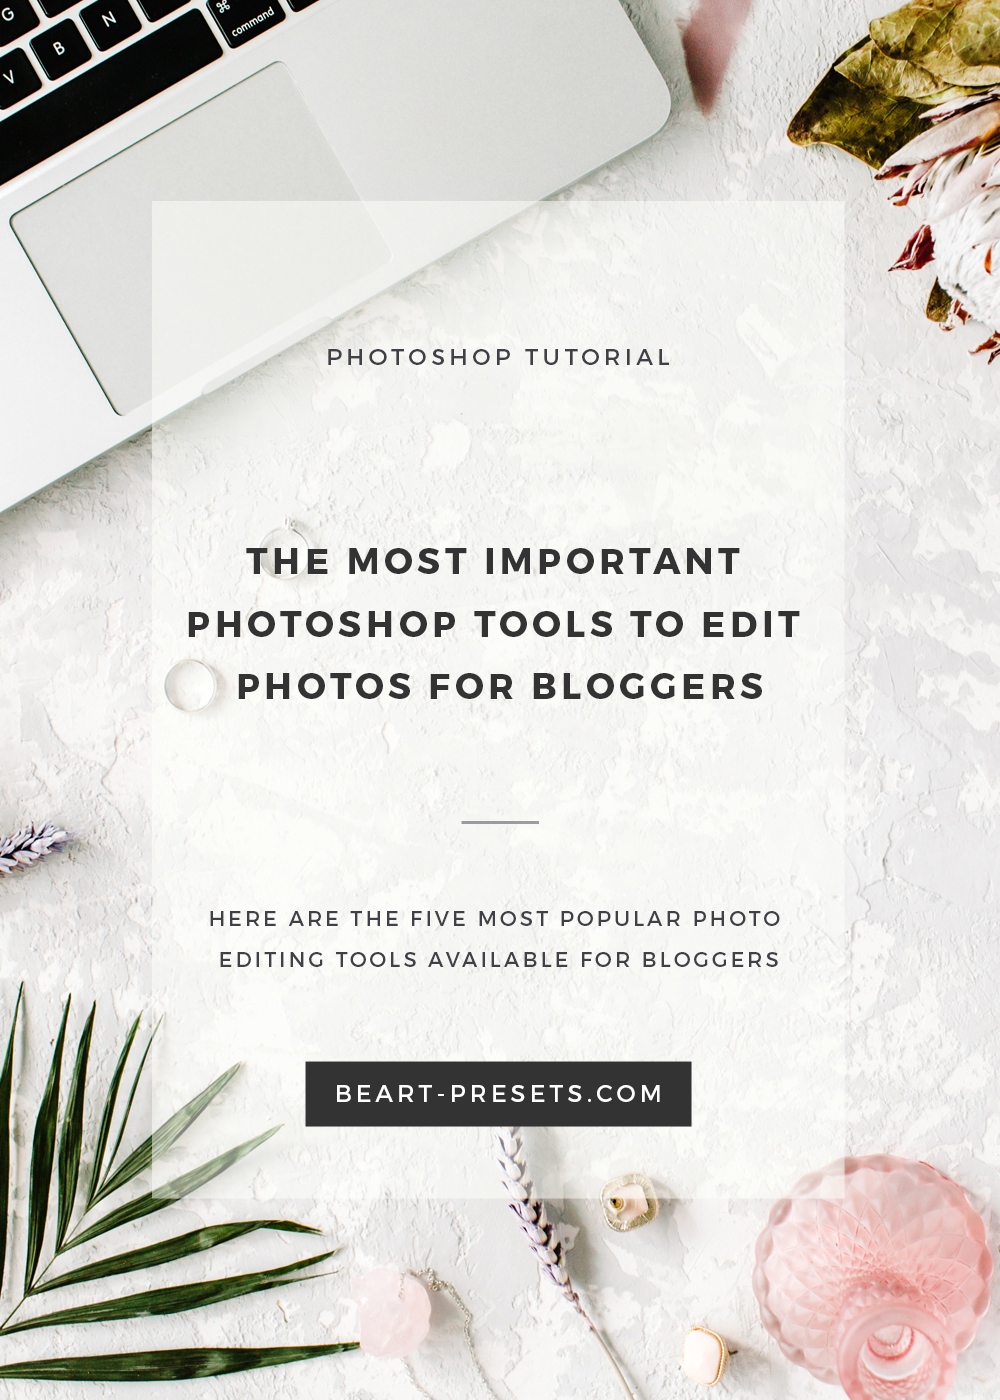 Here are the five most popular photo editing tools available for bloggers